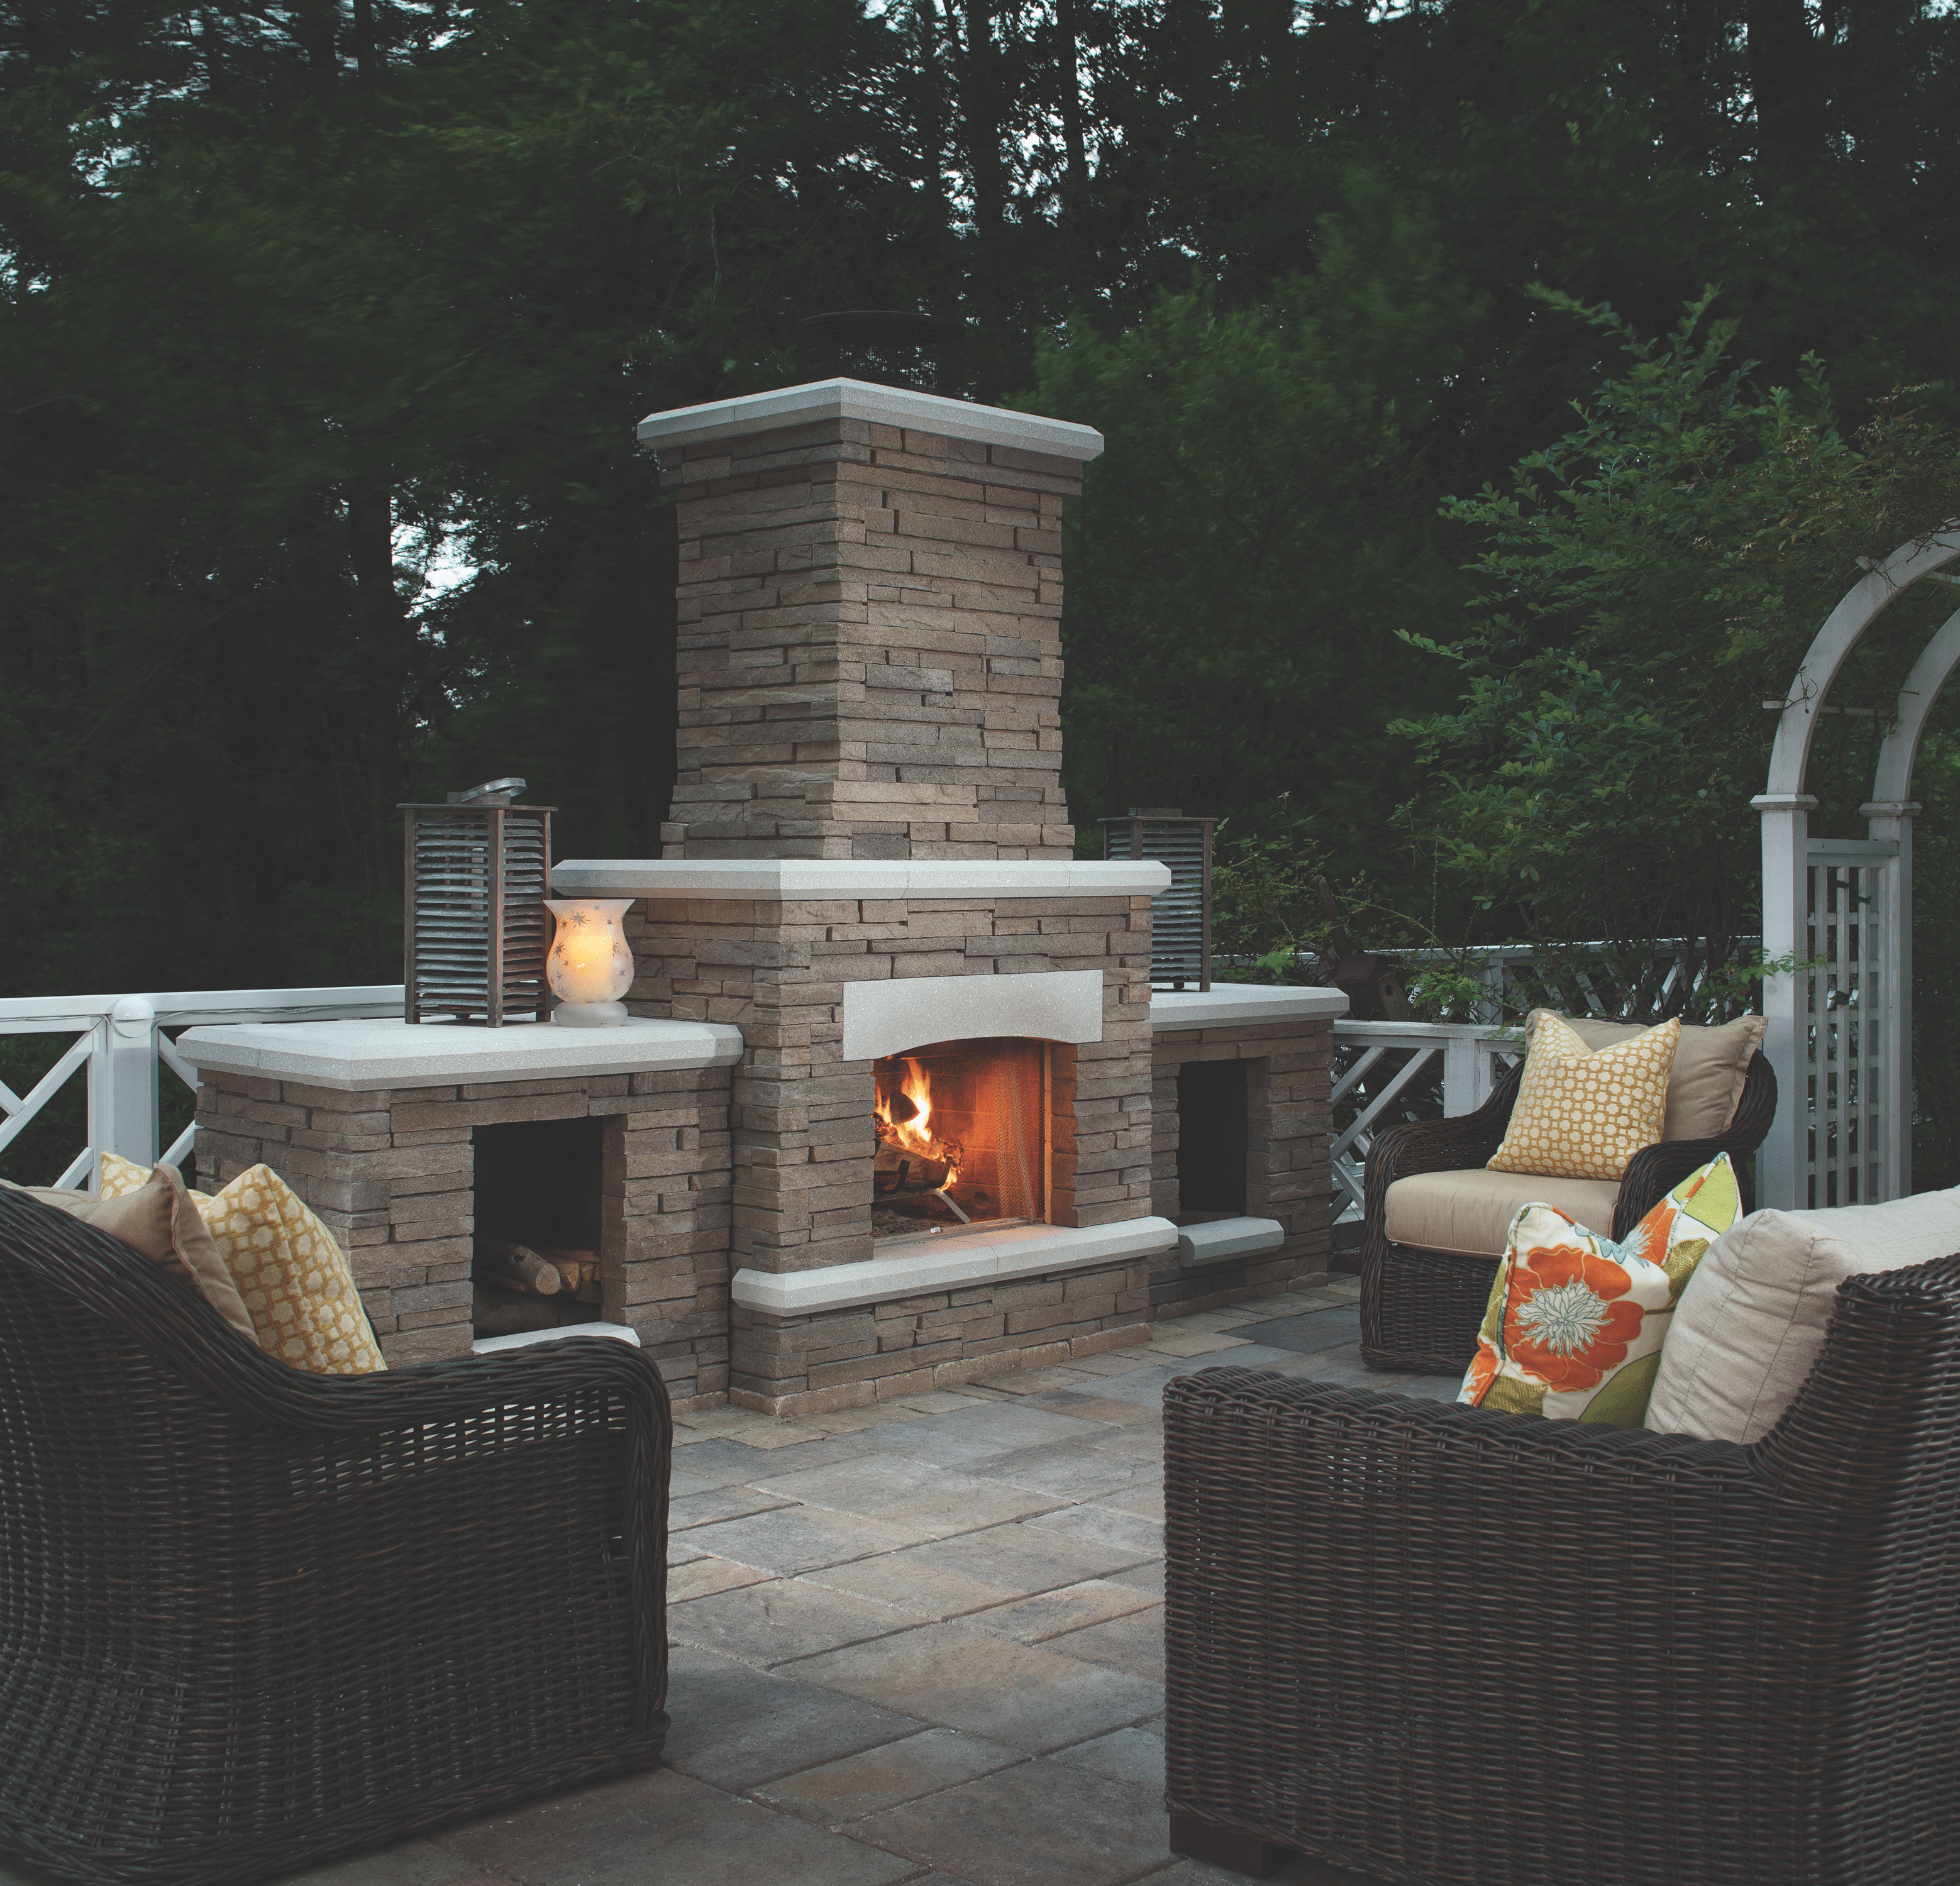 strictly stoneimprove your lifestyle with these backyard upgrades